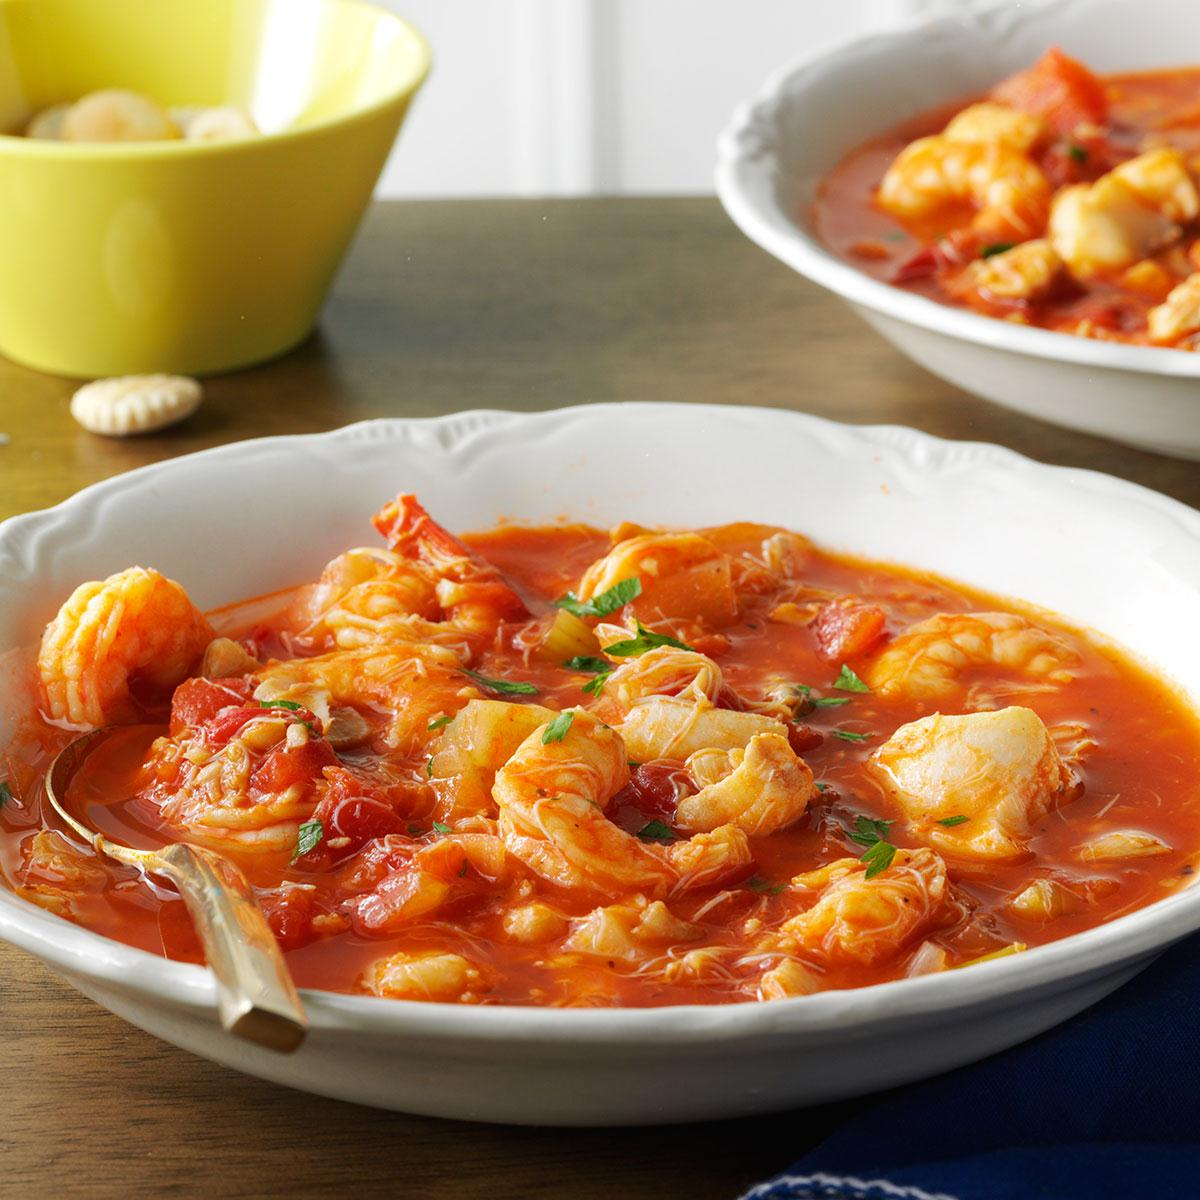 Seafood cioppino recipe taste of home for Fish meal ideas